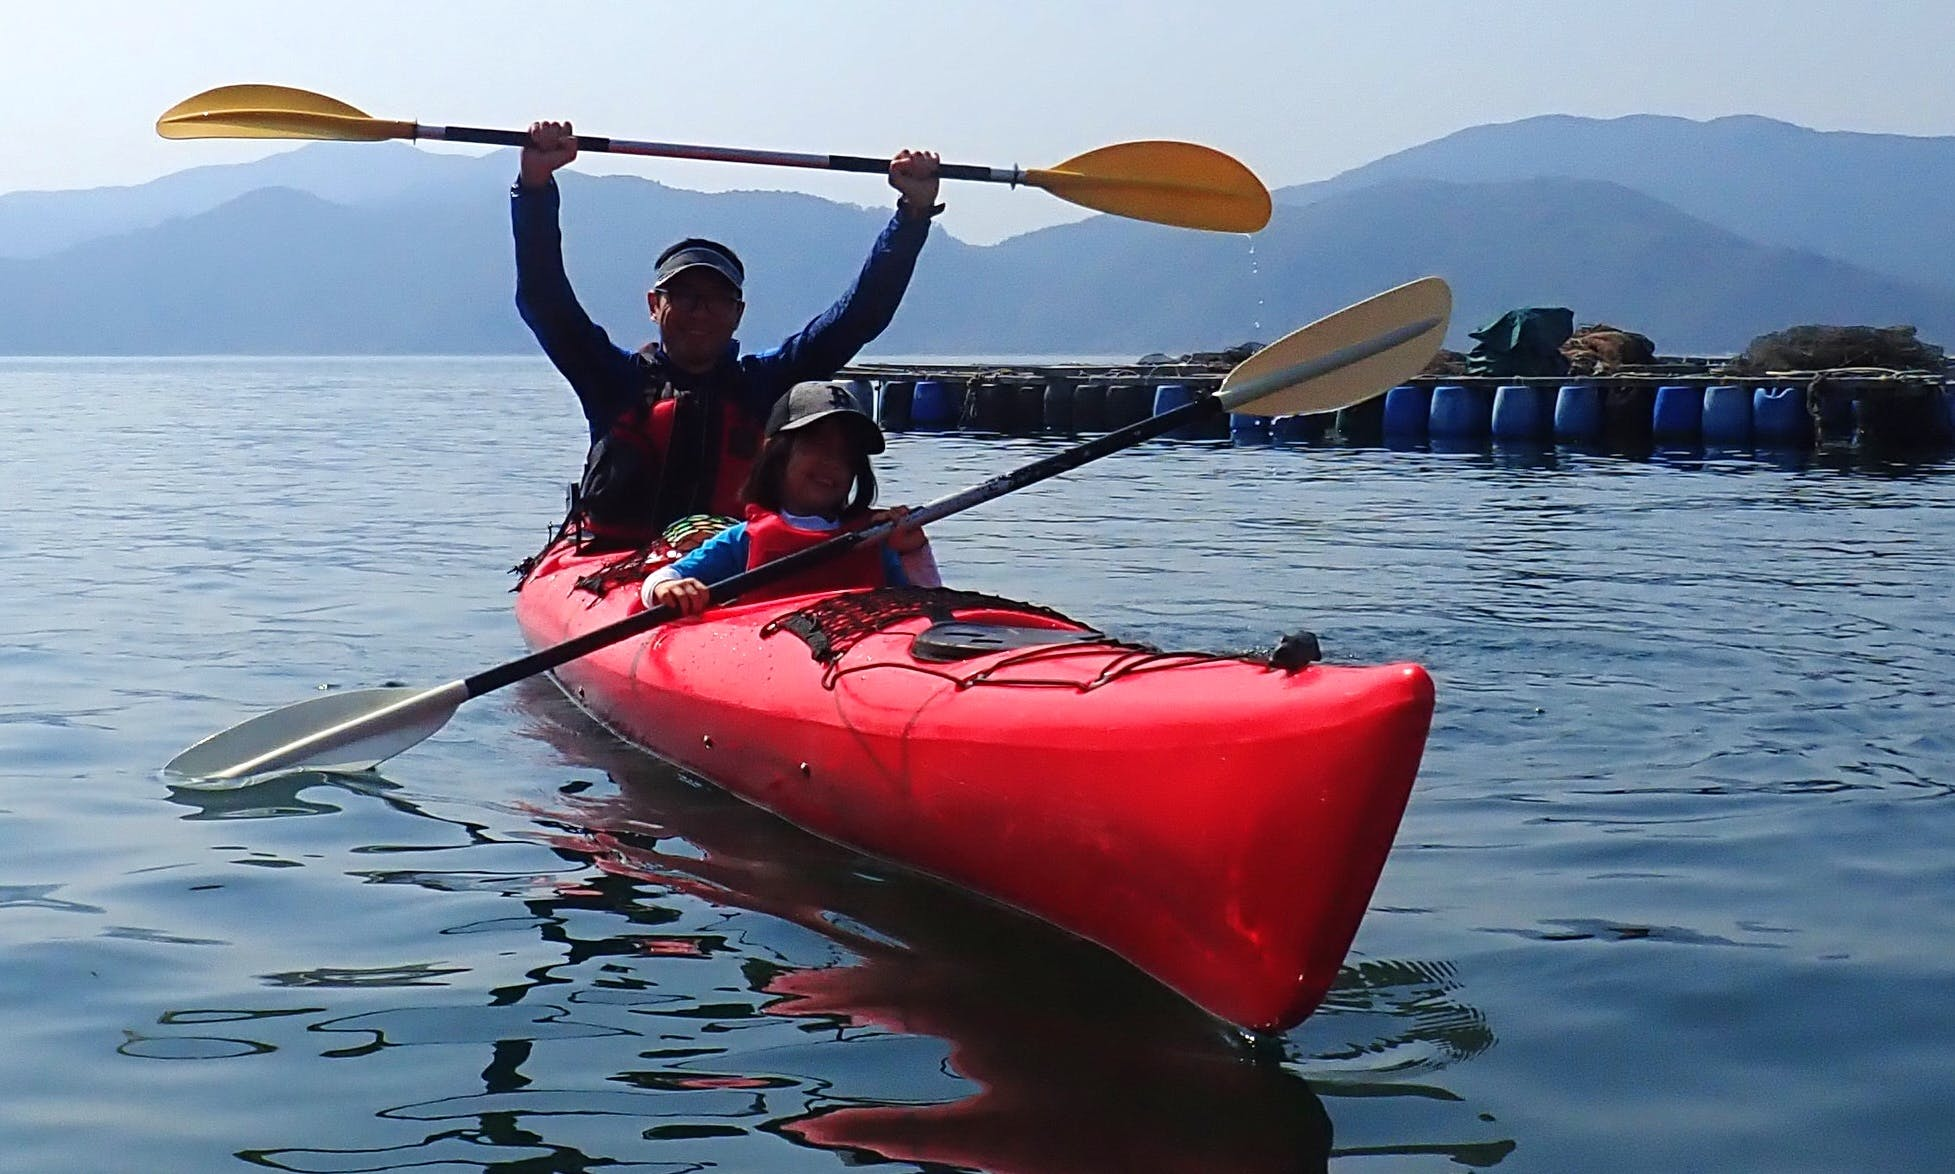 1-Day Sea Kayak Tour to Tai O and Sai Wan Geo Park in Hong Kong